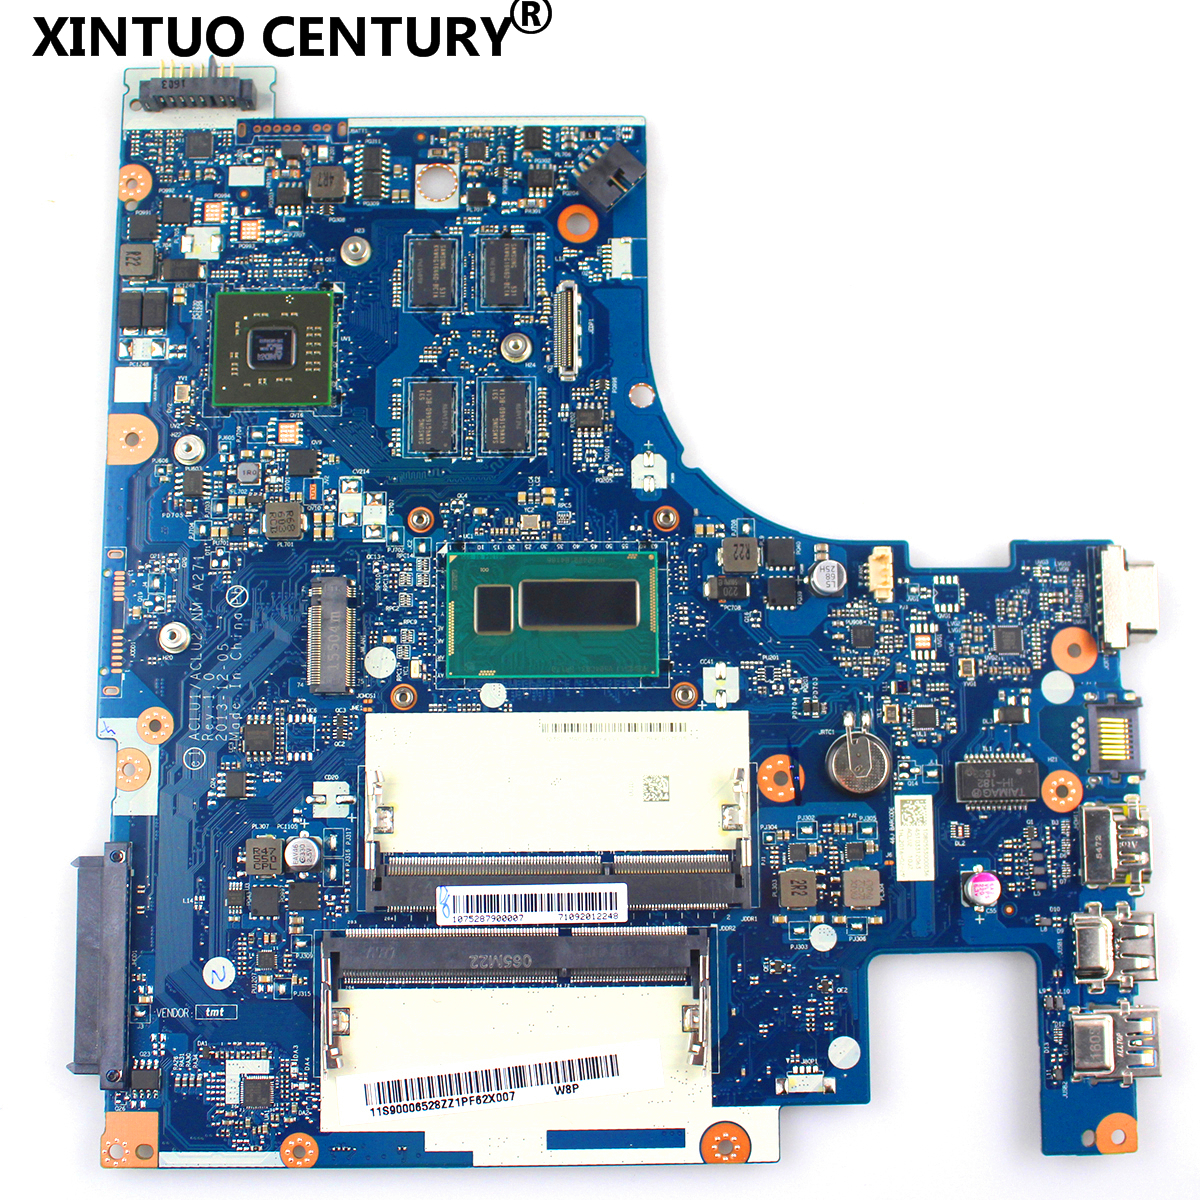 ACLU1/ ACLU2 NM A271 mainboard For <font><b>LENOVO</b></font> <font><b>Z50</b></font>-<font><b>70</b></font> G50-<font><b>70</b></font> laptop <font><b>Motherboard</b></font> WITH PROCESSOR 3558U AND VIDEO CARD 100% full tested image